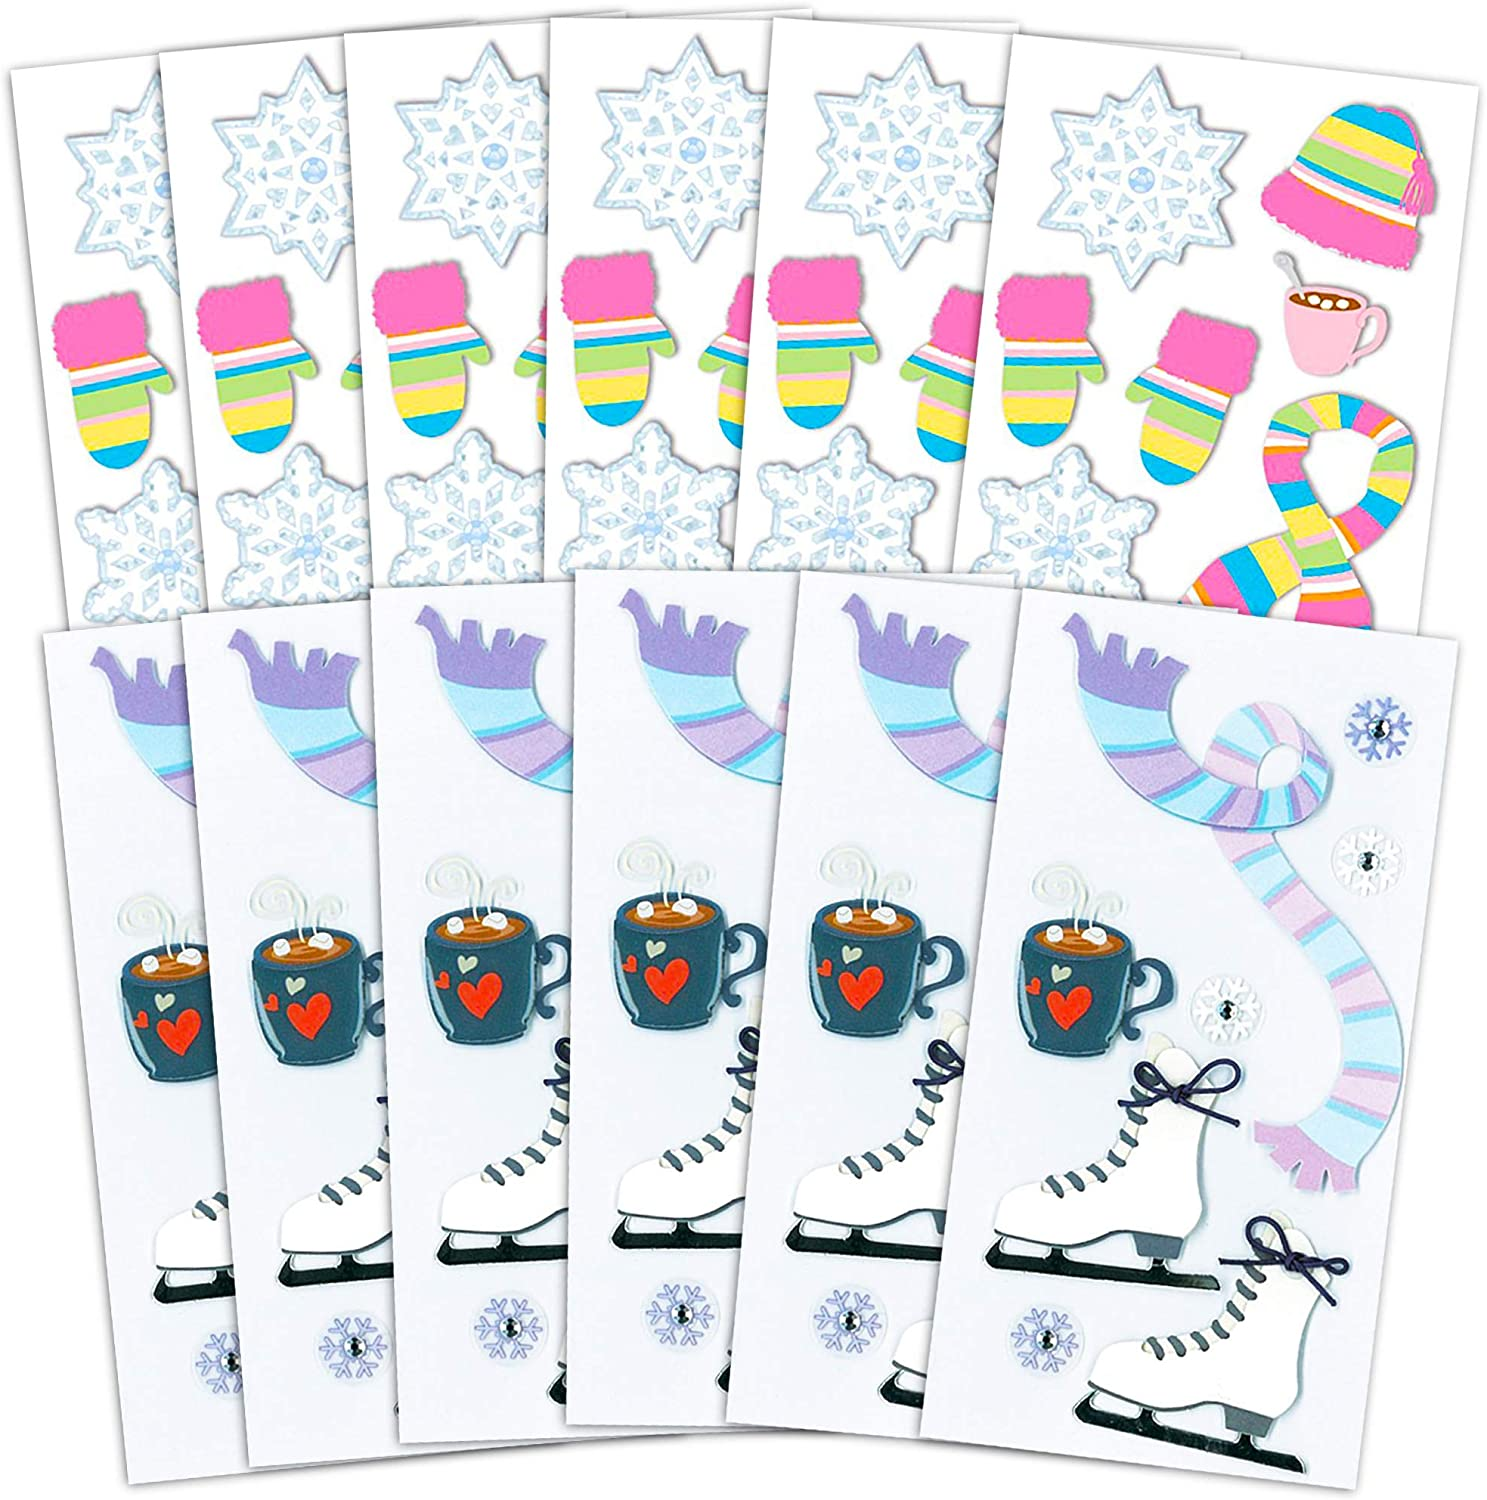 12 Winter Sticker Packs for Kids Toddlers Snowflake Party Supplies, Decorations Ice Skating Stickers Party Favors Pack